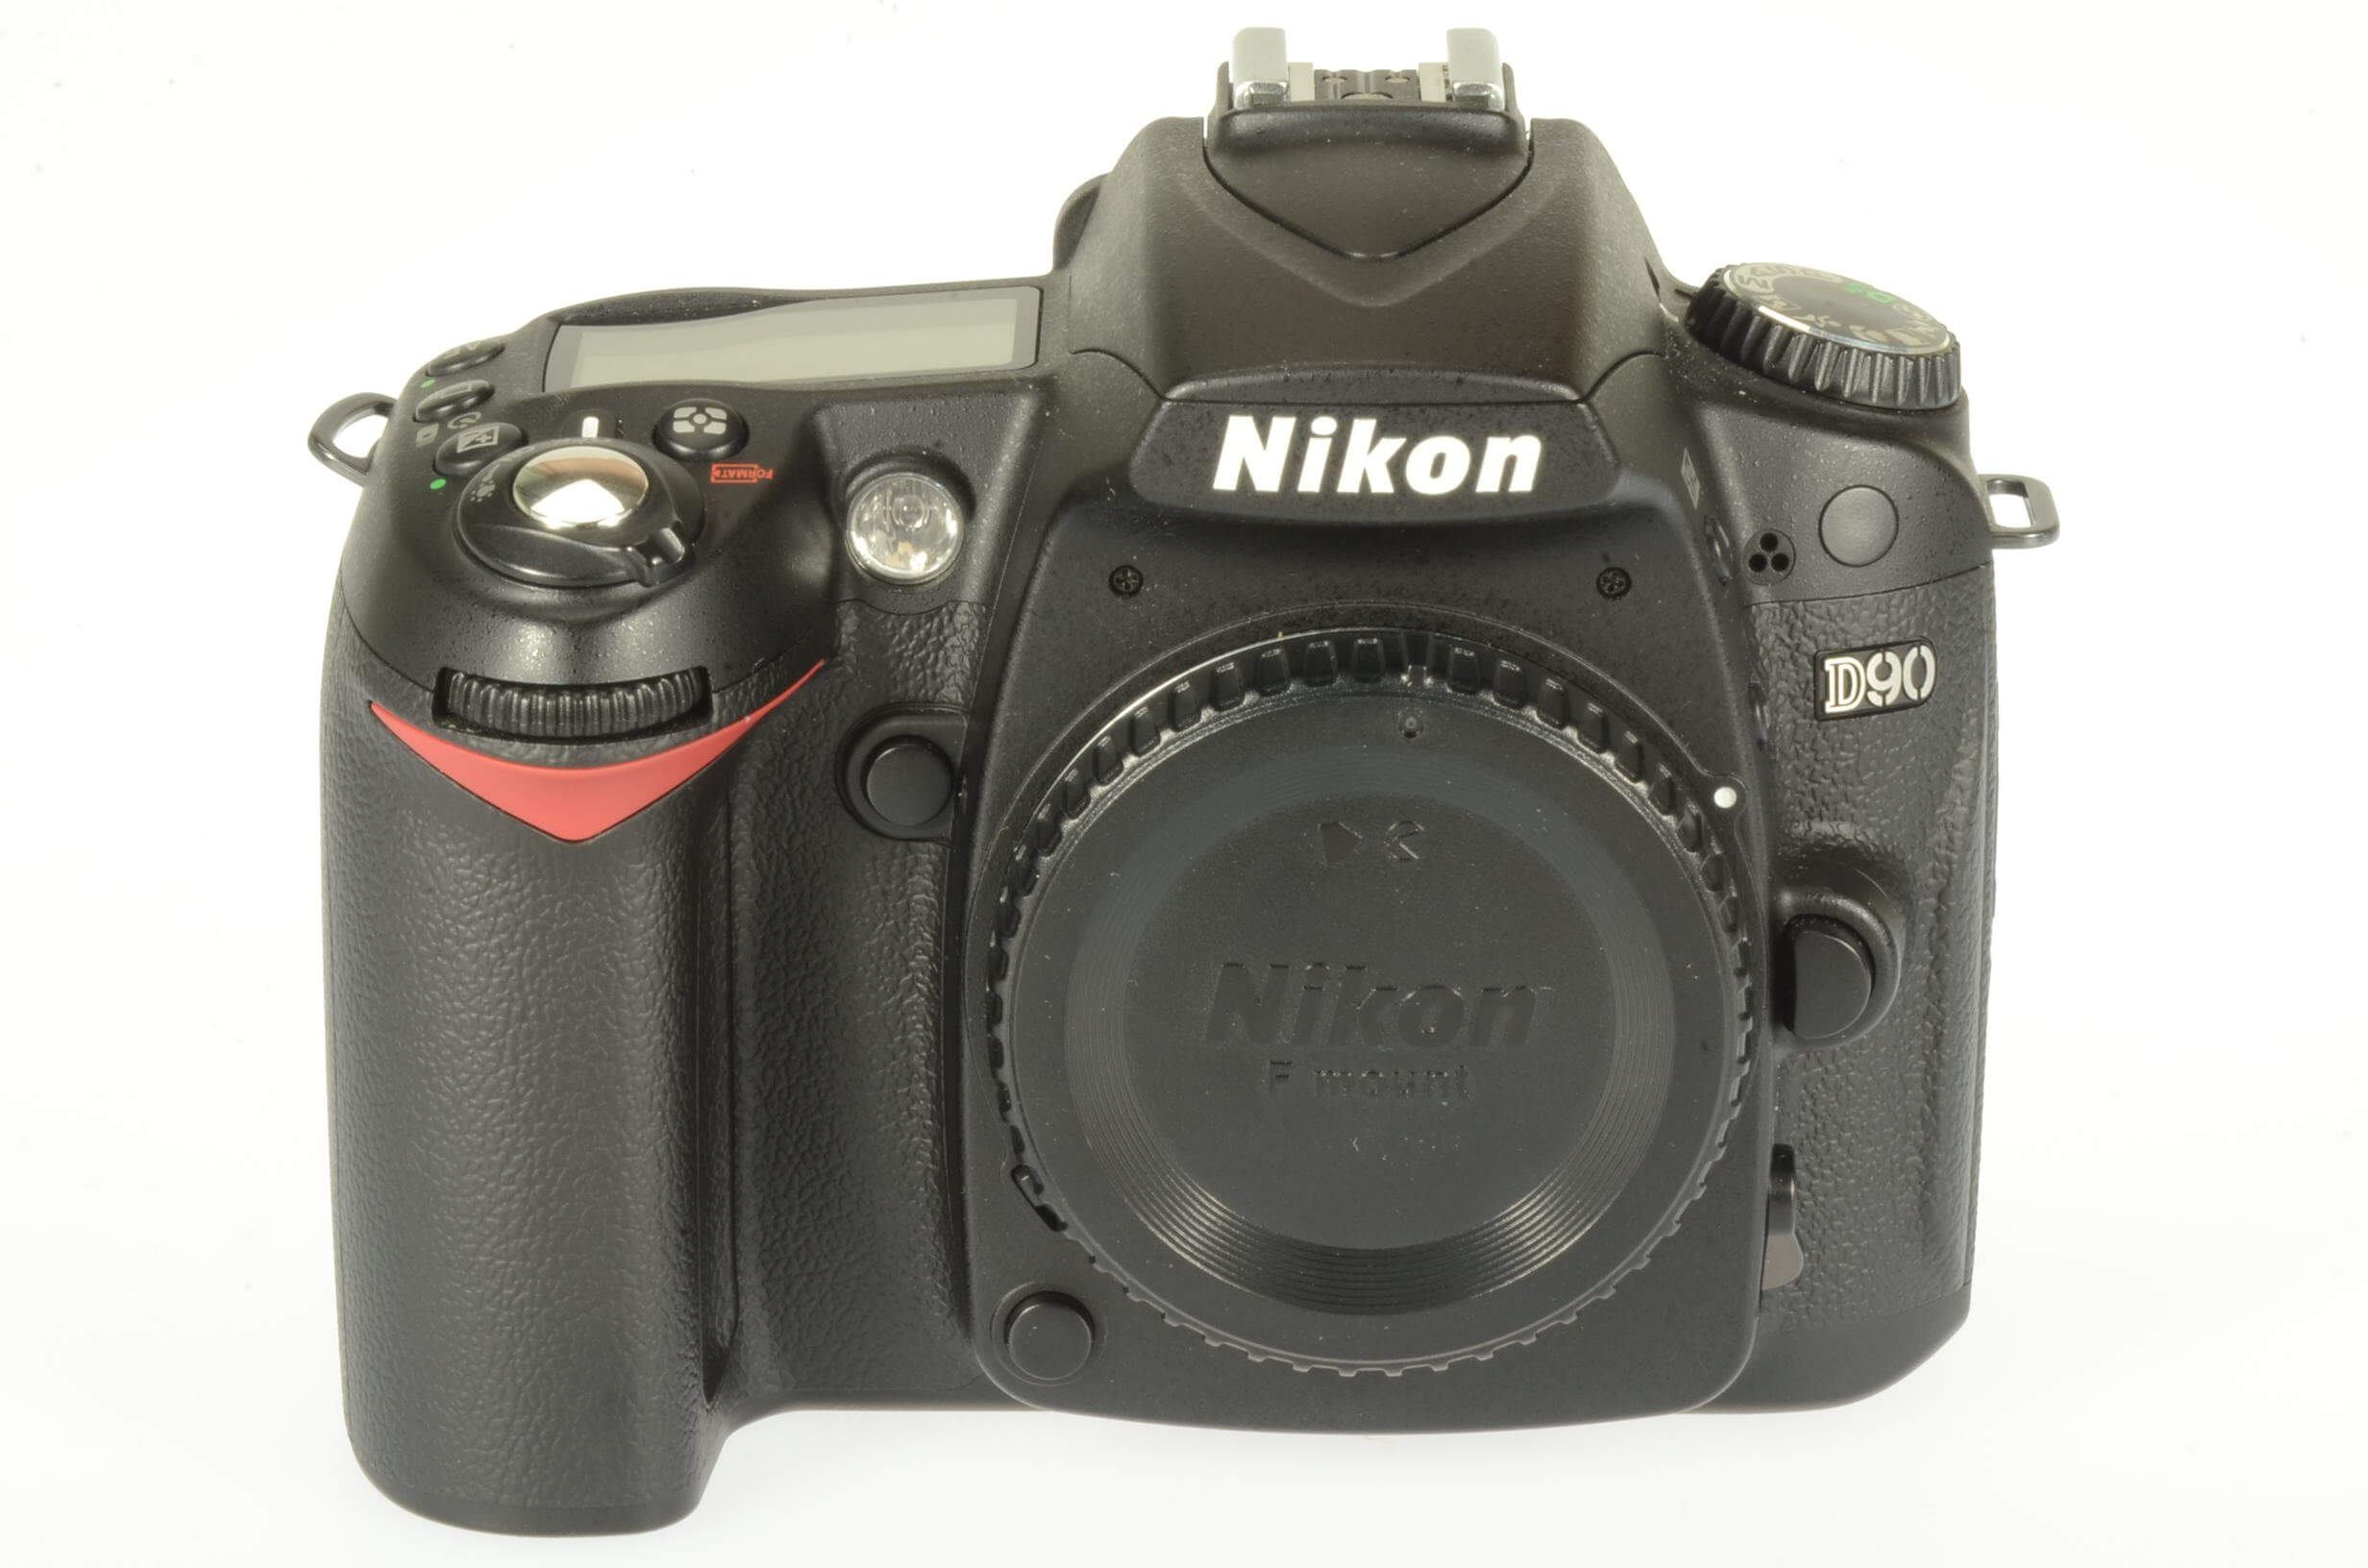 Nikon D90 body, 5594 actuations, excellent condition, almost mint